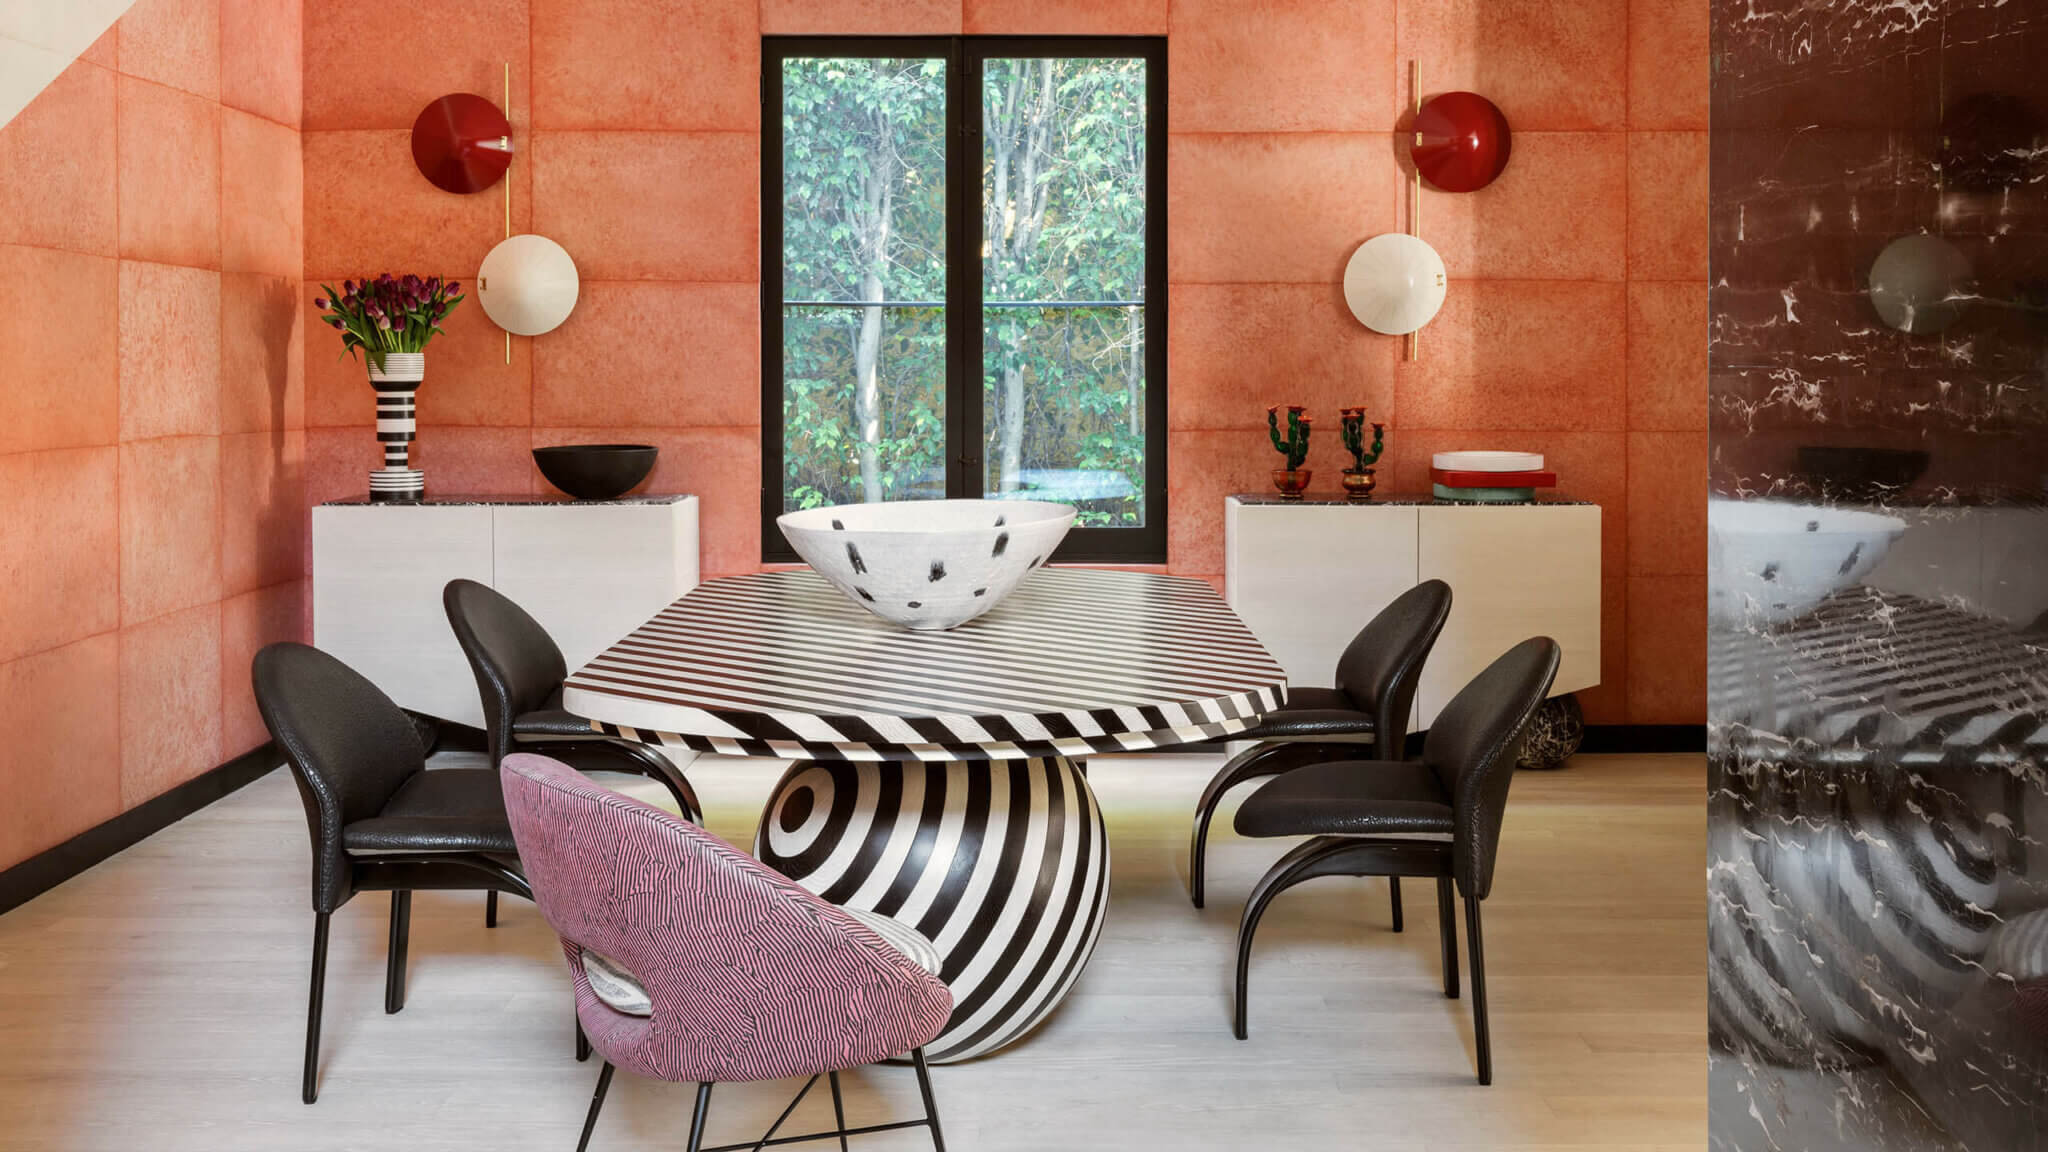 Kelly Wearstler is among the world's most influential interior designers.